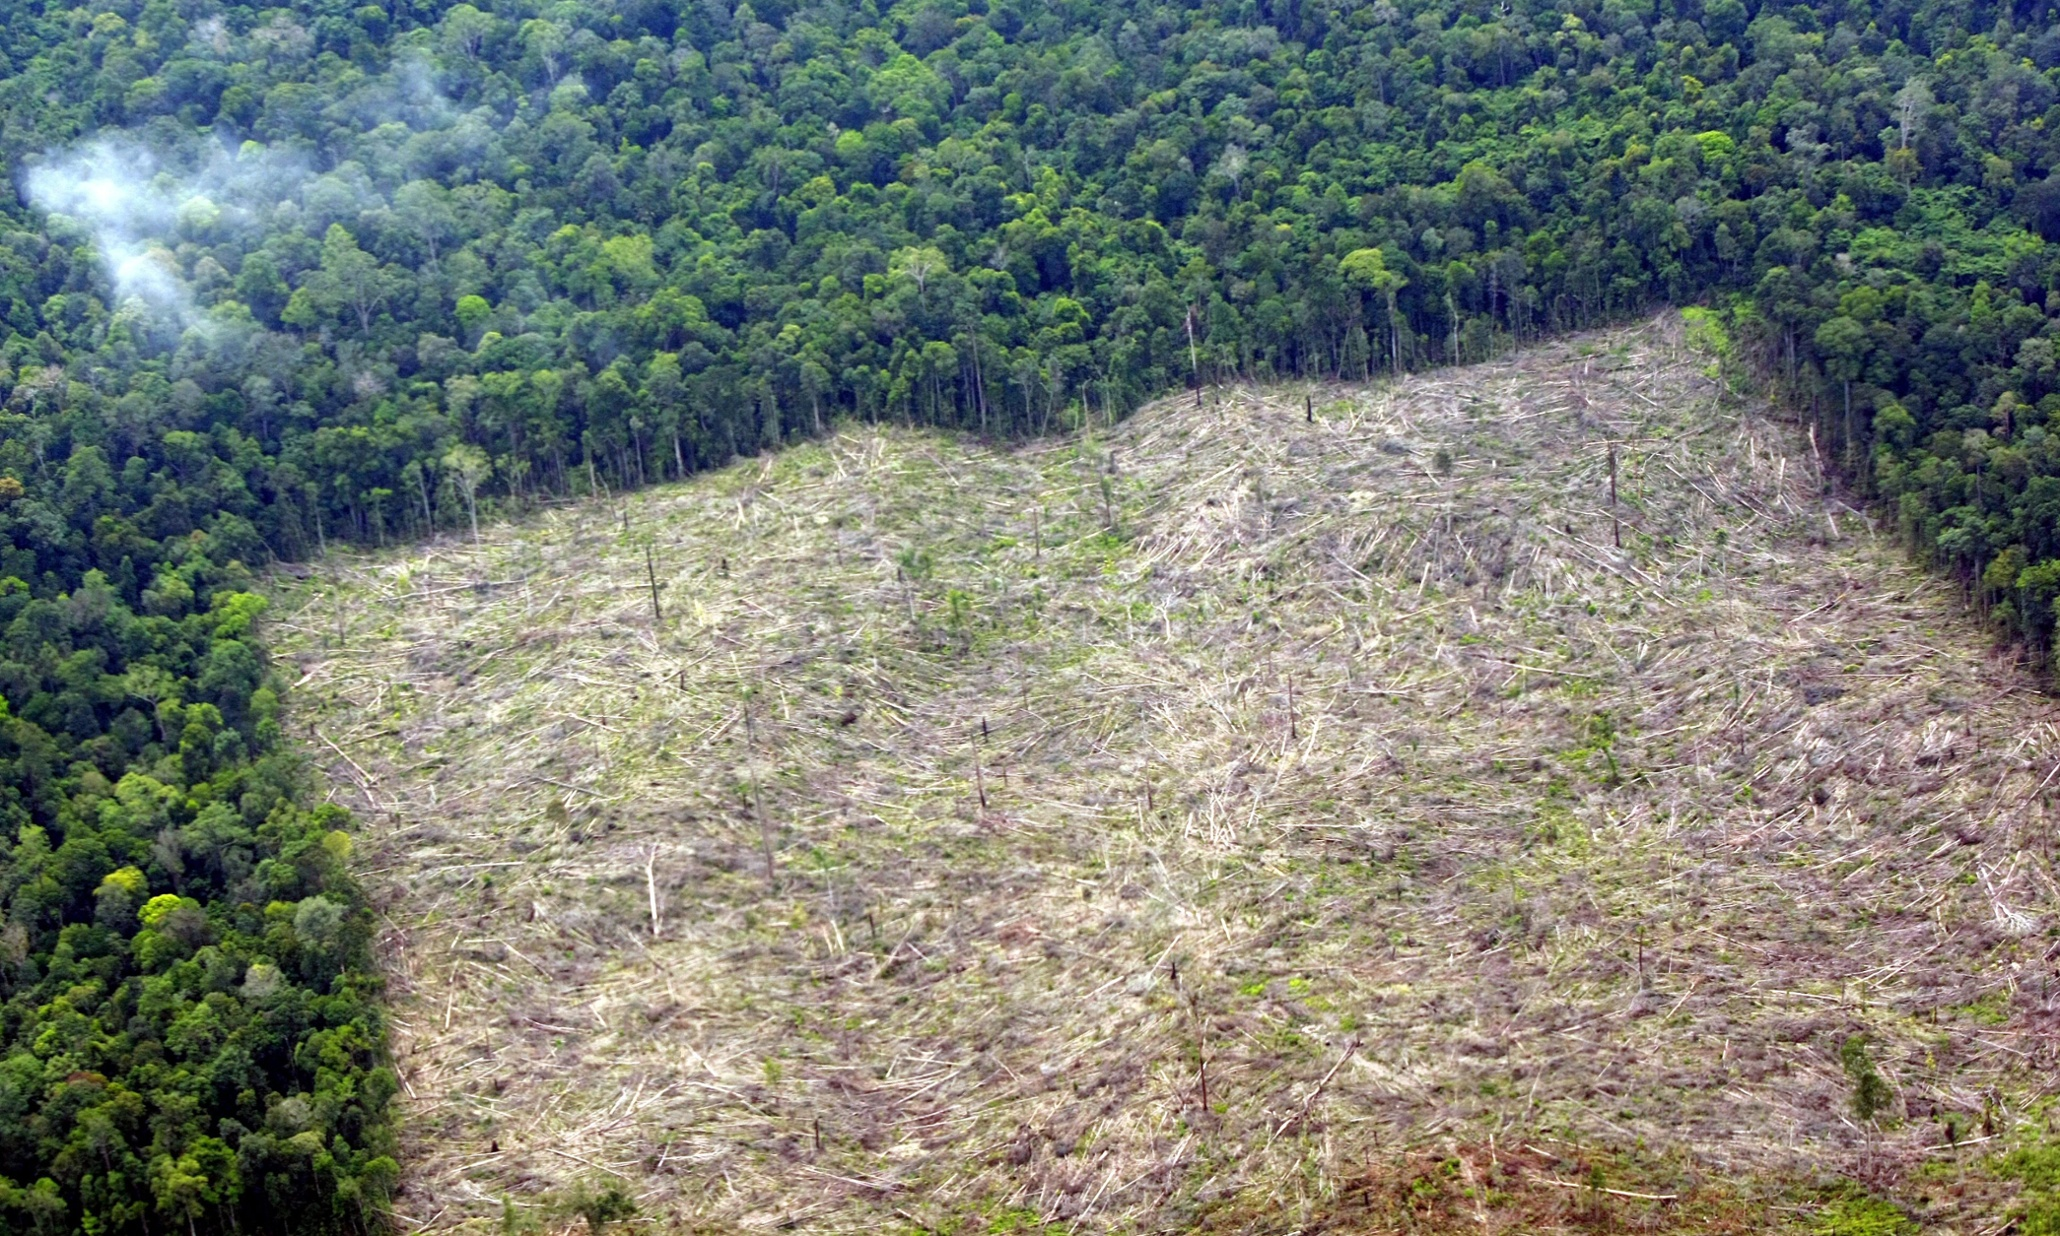 epa03694766 An aerial picture made available on 10 May 2013 shows deforestated land in Indragiri Hulu, Riau province, Indonesia, 04 May 2013. According to Greenpeace, Indonesia is implementing a forest moratorium, but in fact the deforestation is still happening, with customary forests, community forests, protected forests and national parks also being slated. This not only impacts the emission of Green House Gases, and natural disasters, but also social conflict and poverty as the community lost their access to the forest resources and livelihood. Indonesia is likely to extend a two-year moratorium on forest clearing due to expire this month, the Forestry Ministry said. In May 2011, President Susilo Bambang Yudhoyono signed a decree committing Indonesia to a moratorium on clearing permits for an area of about 60 million hectares of natural forest and carbon-rich peatland. The country's deforestation rate has decreased significantly, from 3.5 million hectares a year during 2002-09 to currently 450,000 hectares a year. Indonesia is among the largest producers of greenhouse gases, largely owing to the rapid destruction of its forests. It aims to reduce the emissions by at least 26 percent by 2020. EPA/BAGUS INDAHONO EPA/BAGUS INDAHONO picture by The Guardiam.com